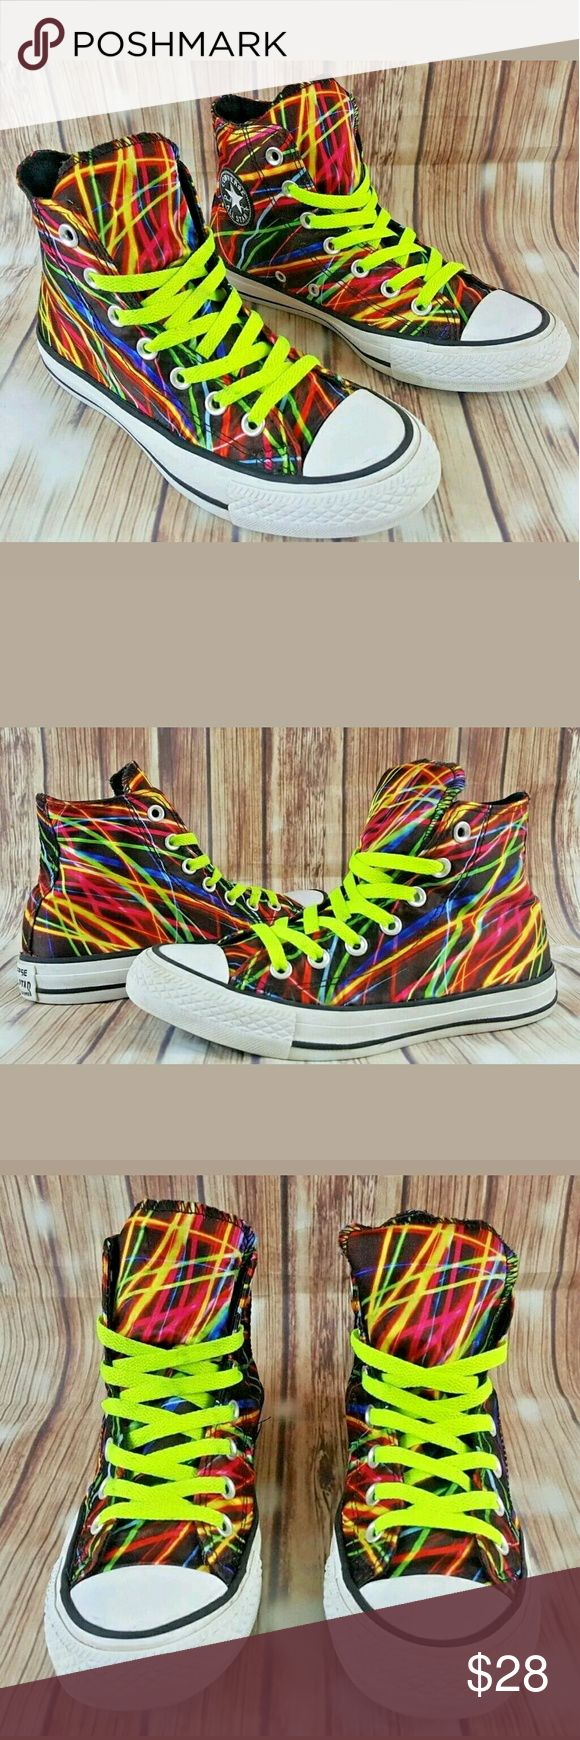 Converse Chuck Taylor All Star Hi Silky Neon Converse Chuck Taylor All Star Hi Lights Silky Neon Sneakers Size Mens 4 Women's 6 Converse Shoes Sneakers